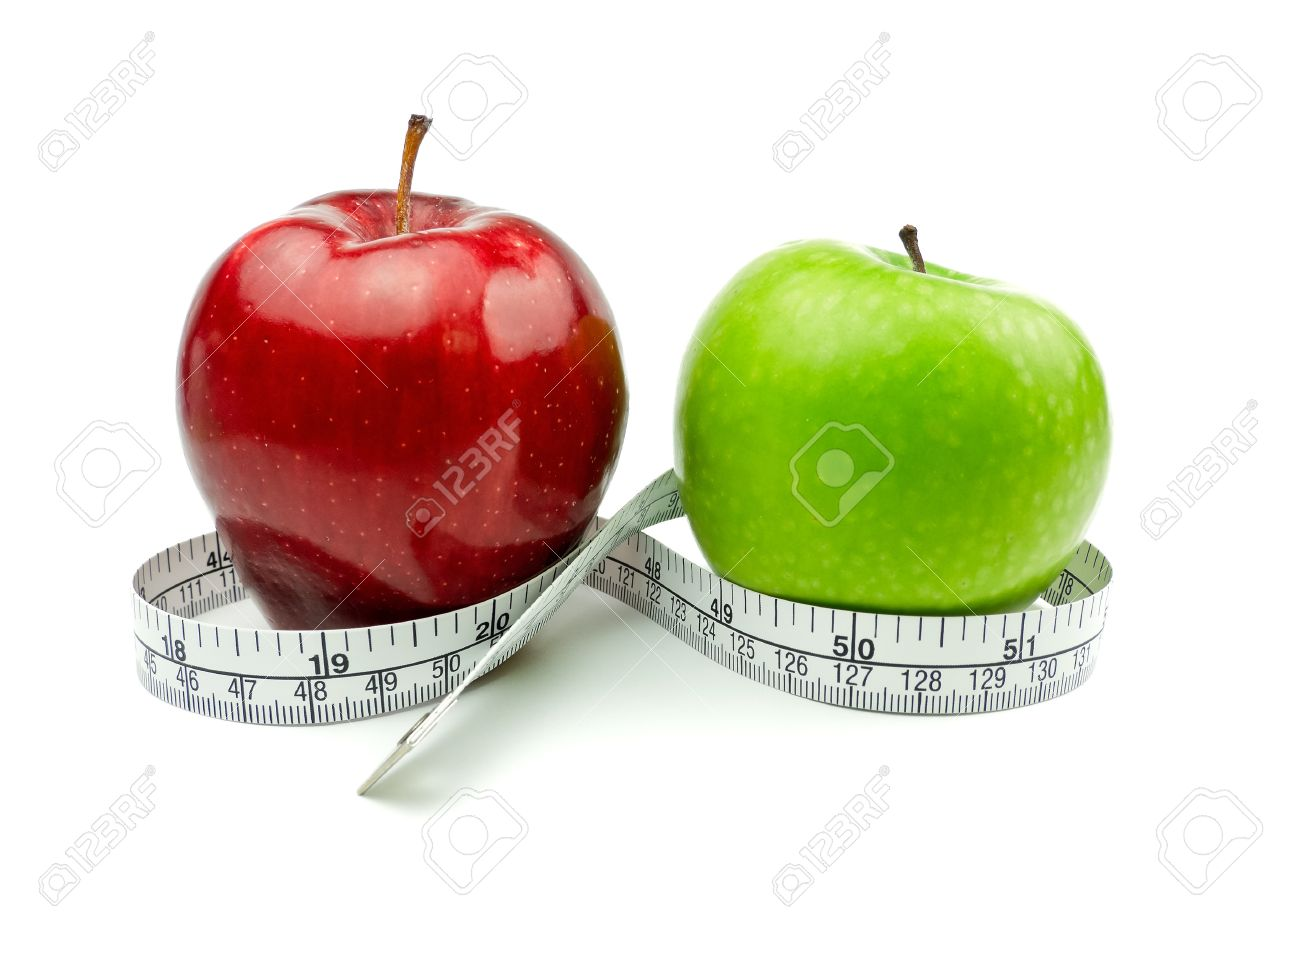 Green Apple and Red Apple with measuring tape on white background Stock Photo - 12432419